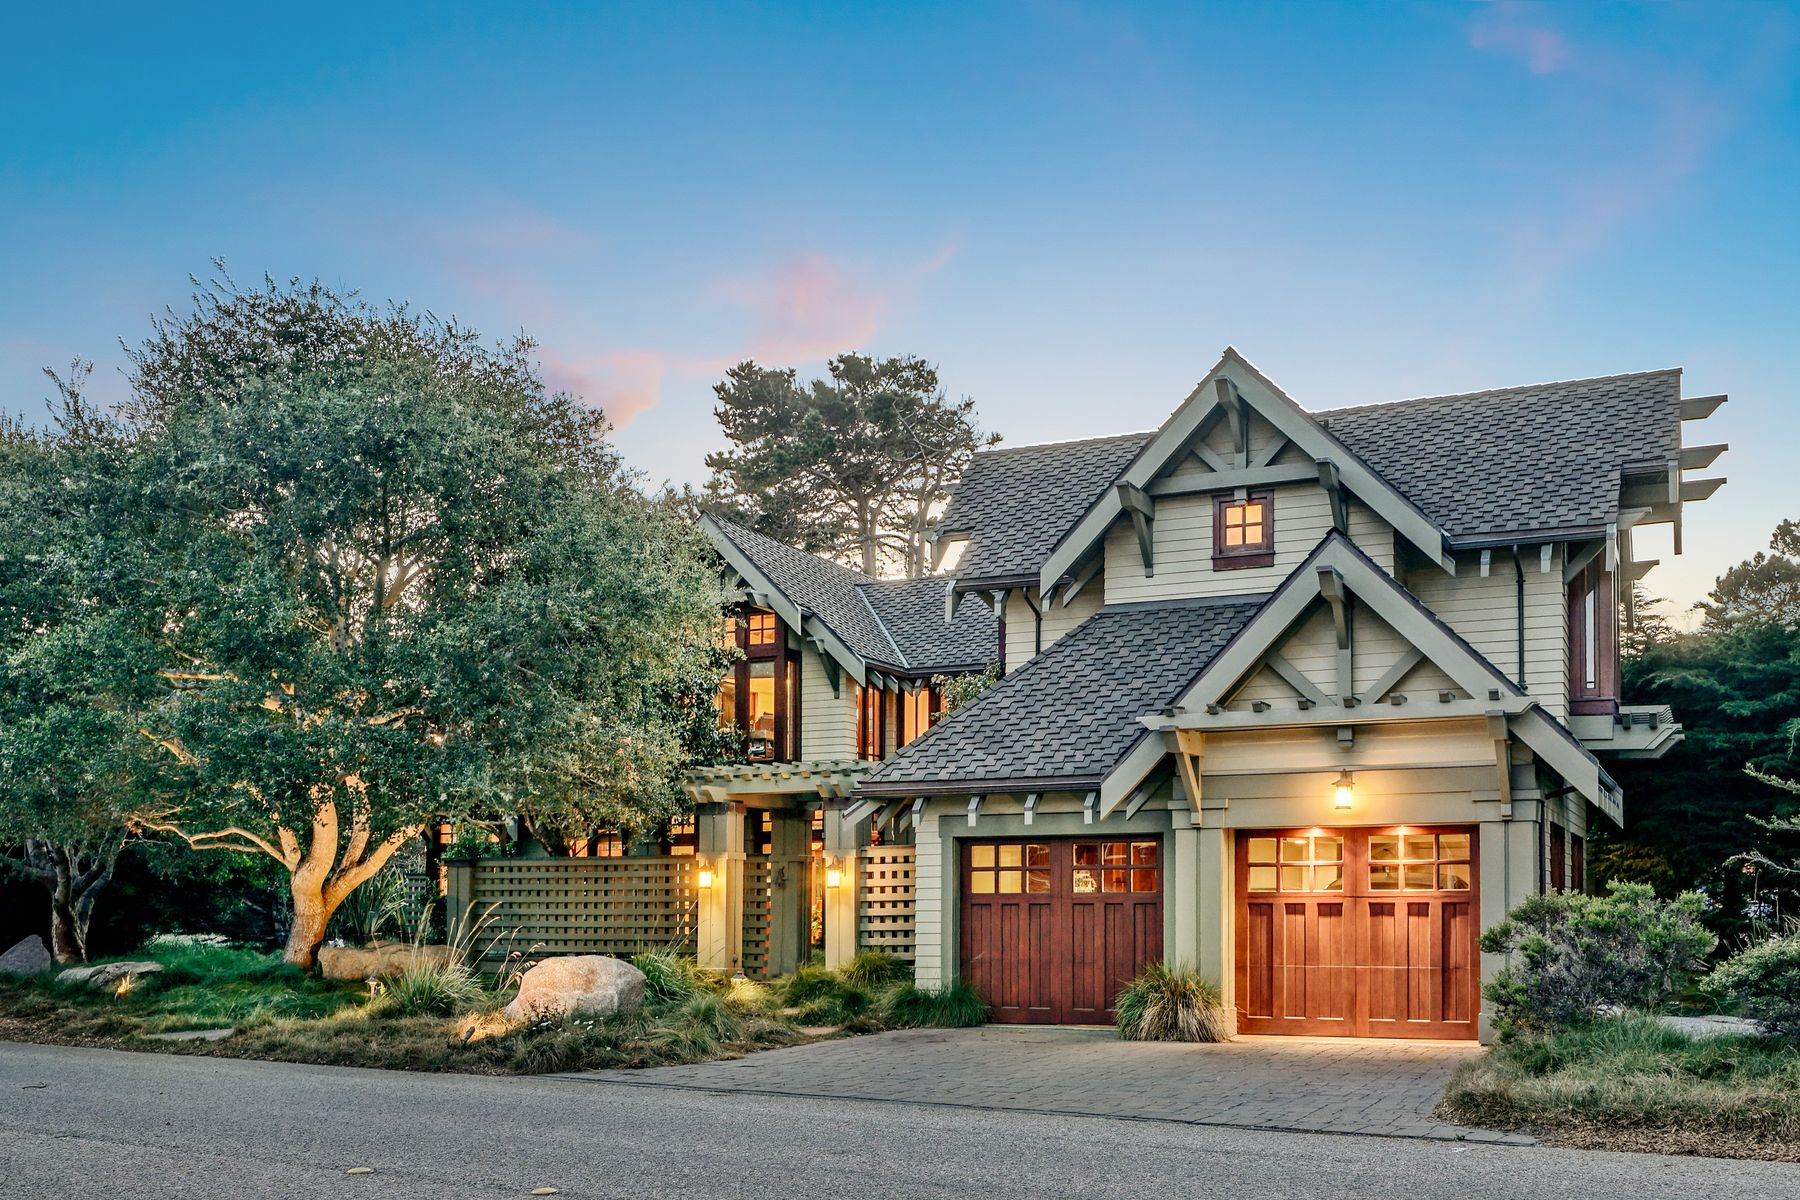 Single Family Homes for Sale at Craftsman Beach Escape 130 Asilomar Boulevard Pacific Grove, California 93950 United States